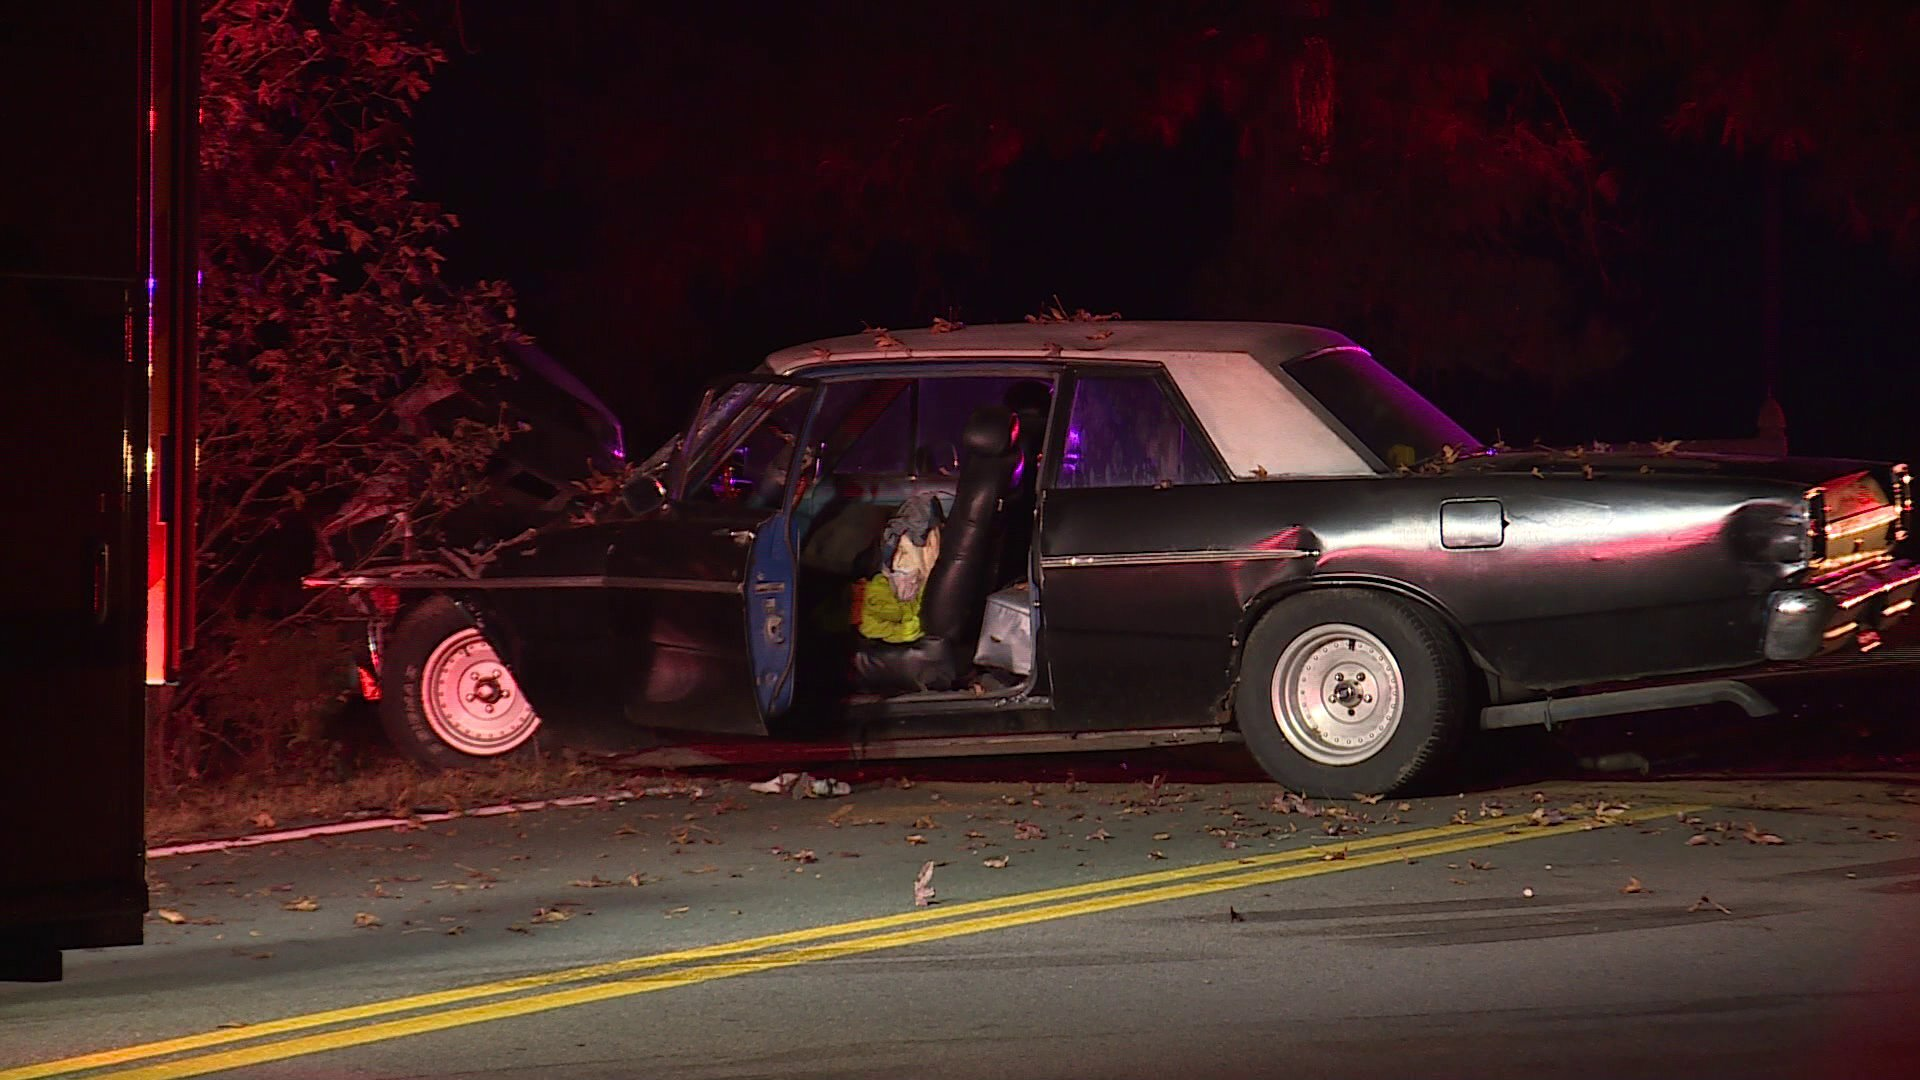 Photos: Man seriously injured after striking tree in Chesterfield crash